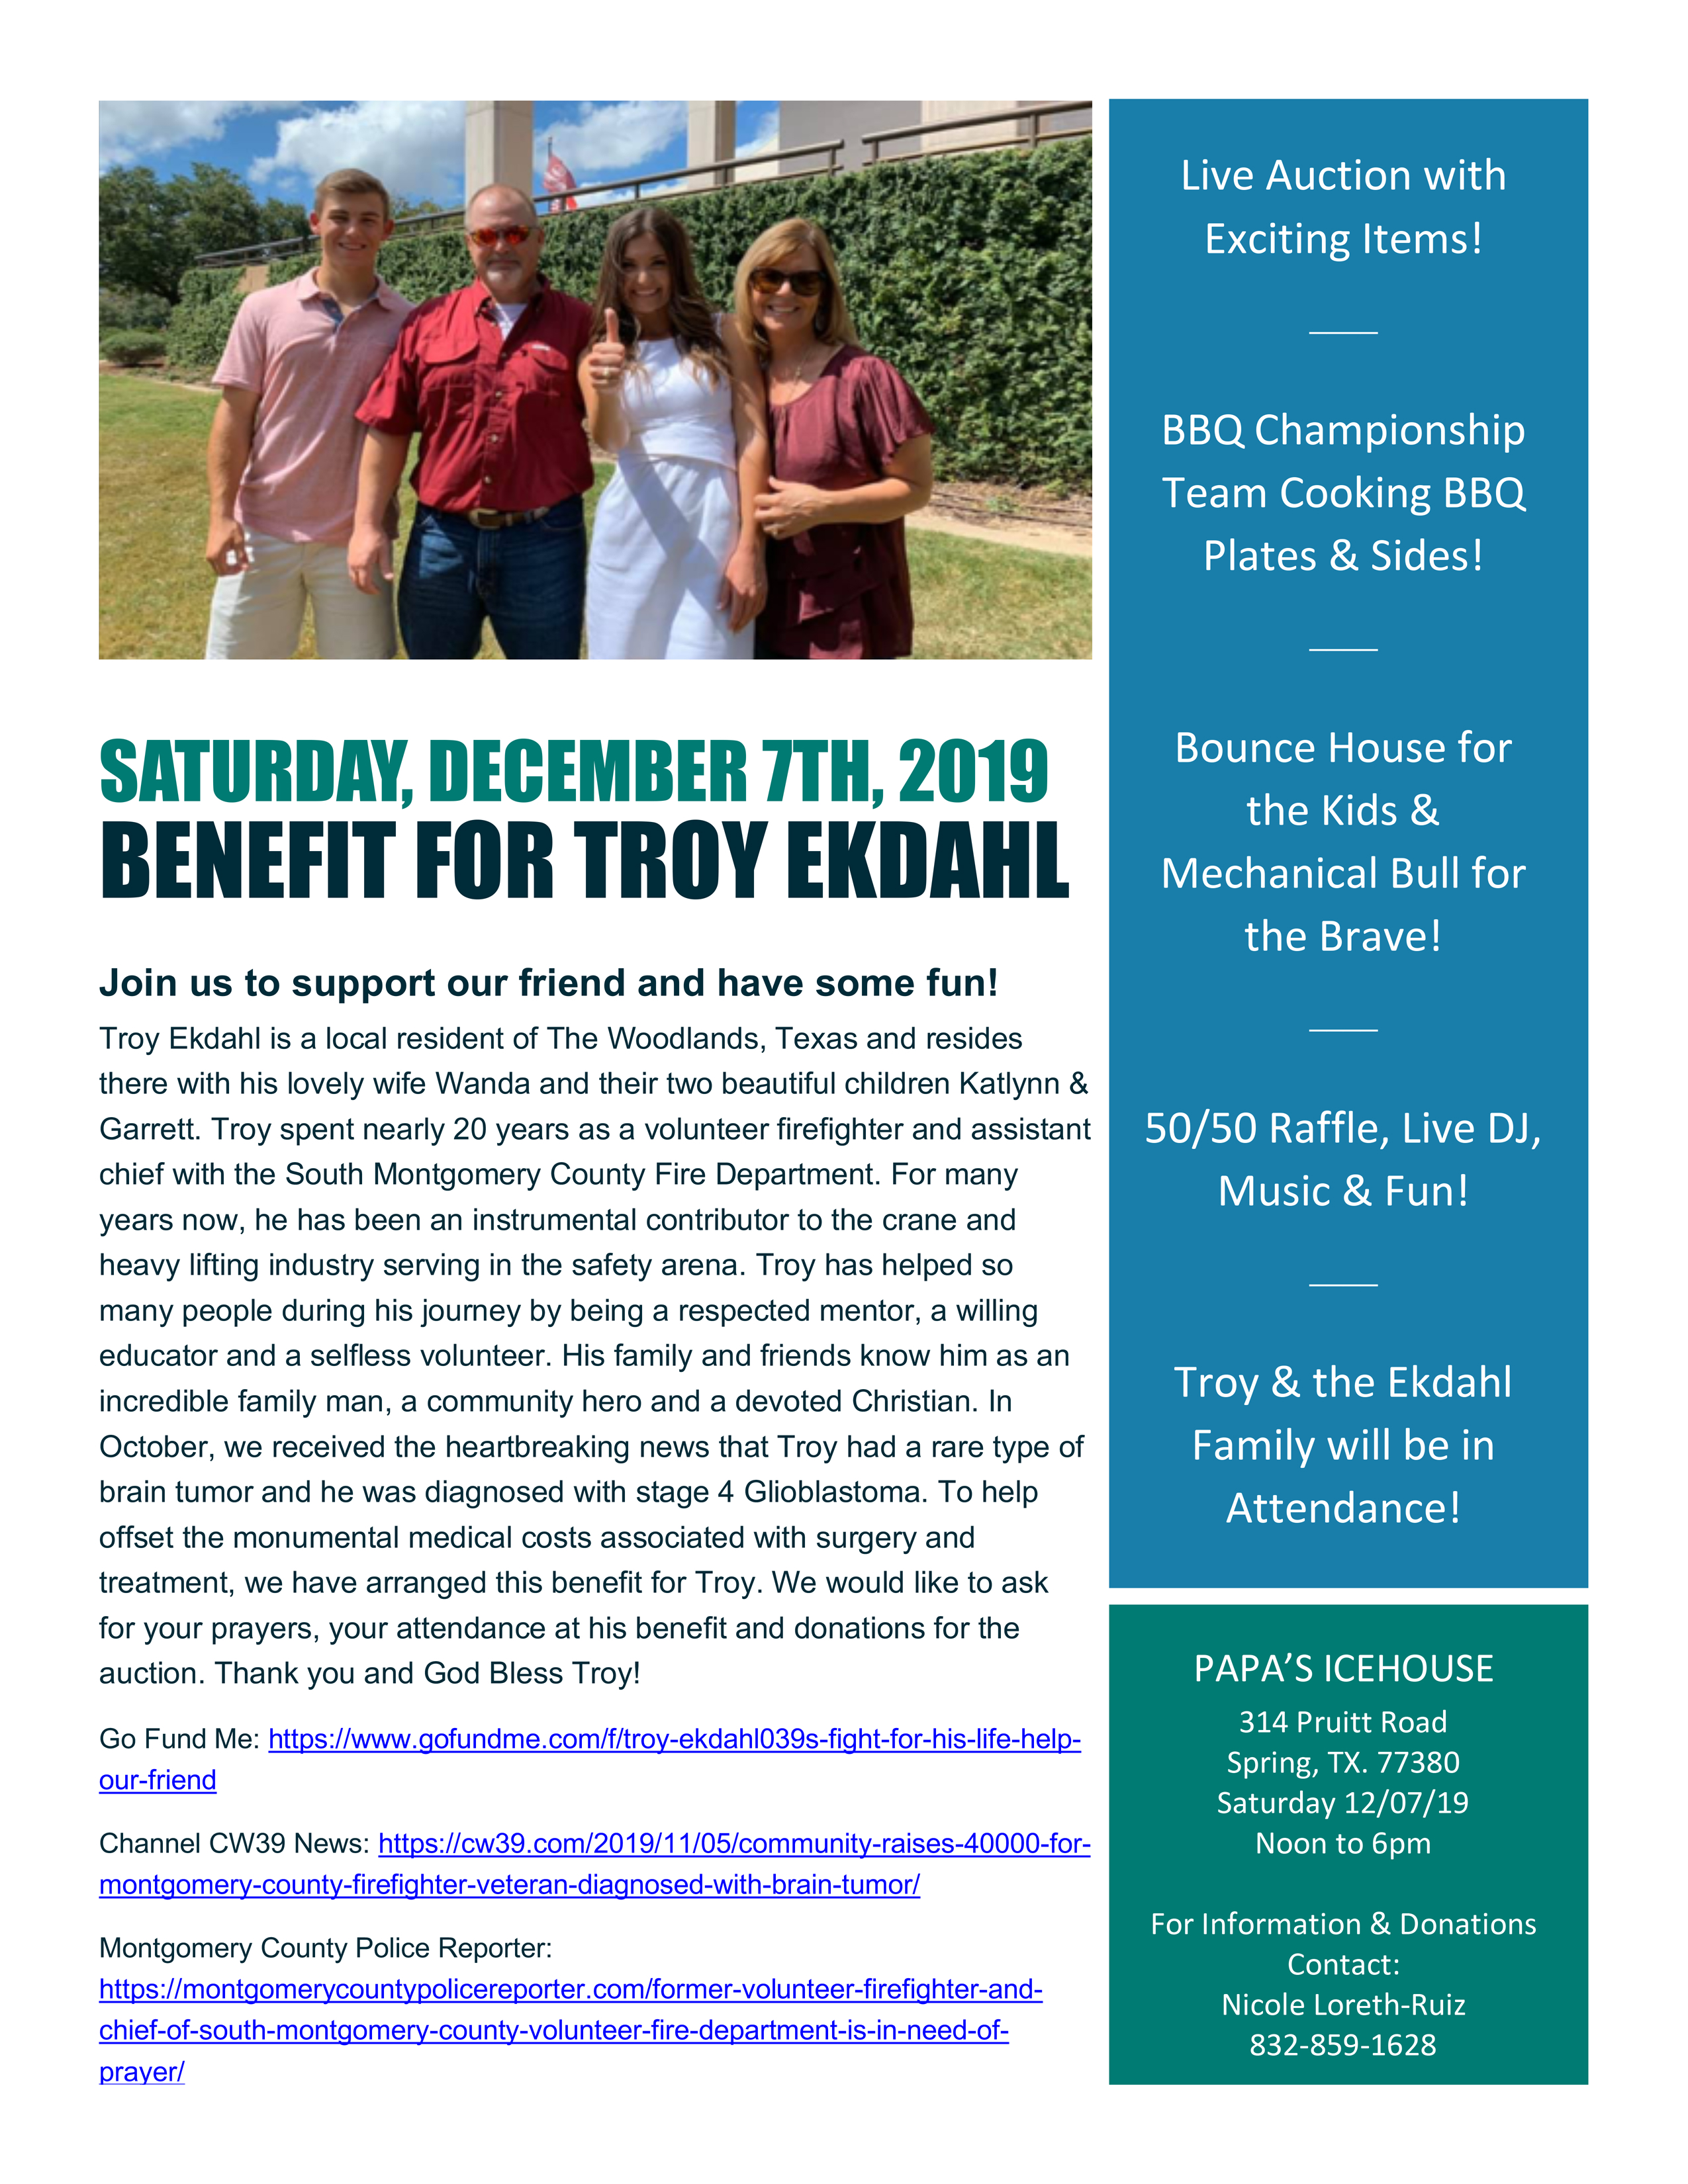 BENEFIT FOR FORMER SOUTH MONTGOMERY COUNTY  ASSISTANT FIRE CHIEF